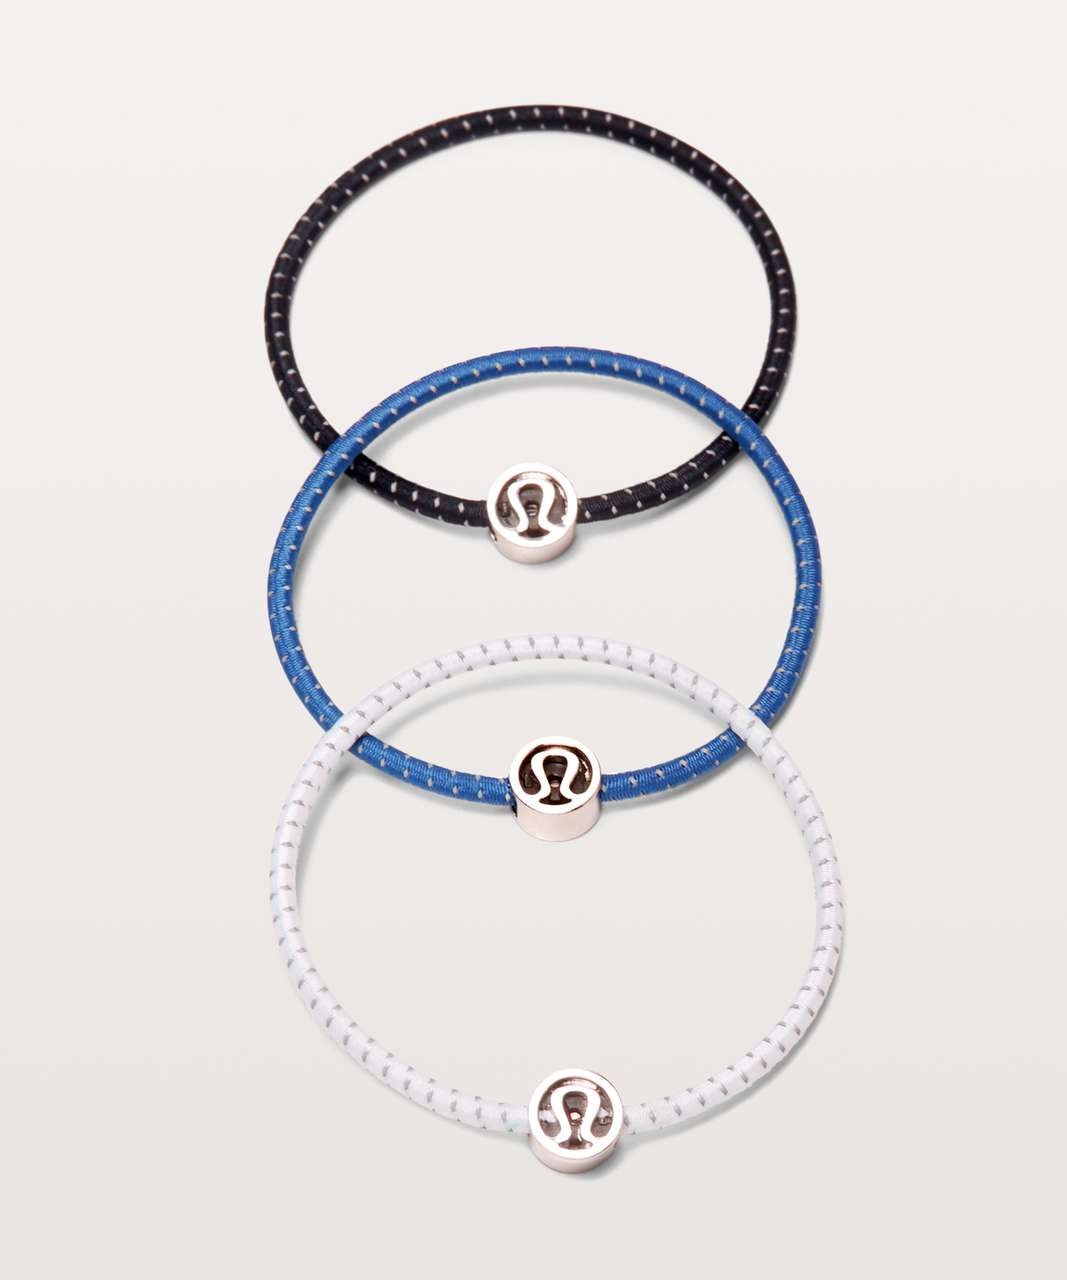 Lululemon Glow On Hair Ties - White / Moroccan Blue / Midnight Navy